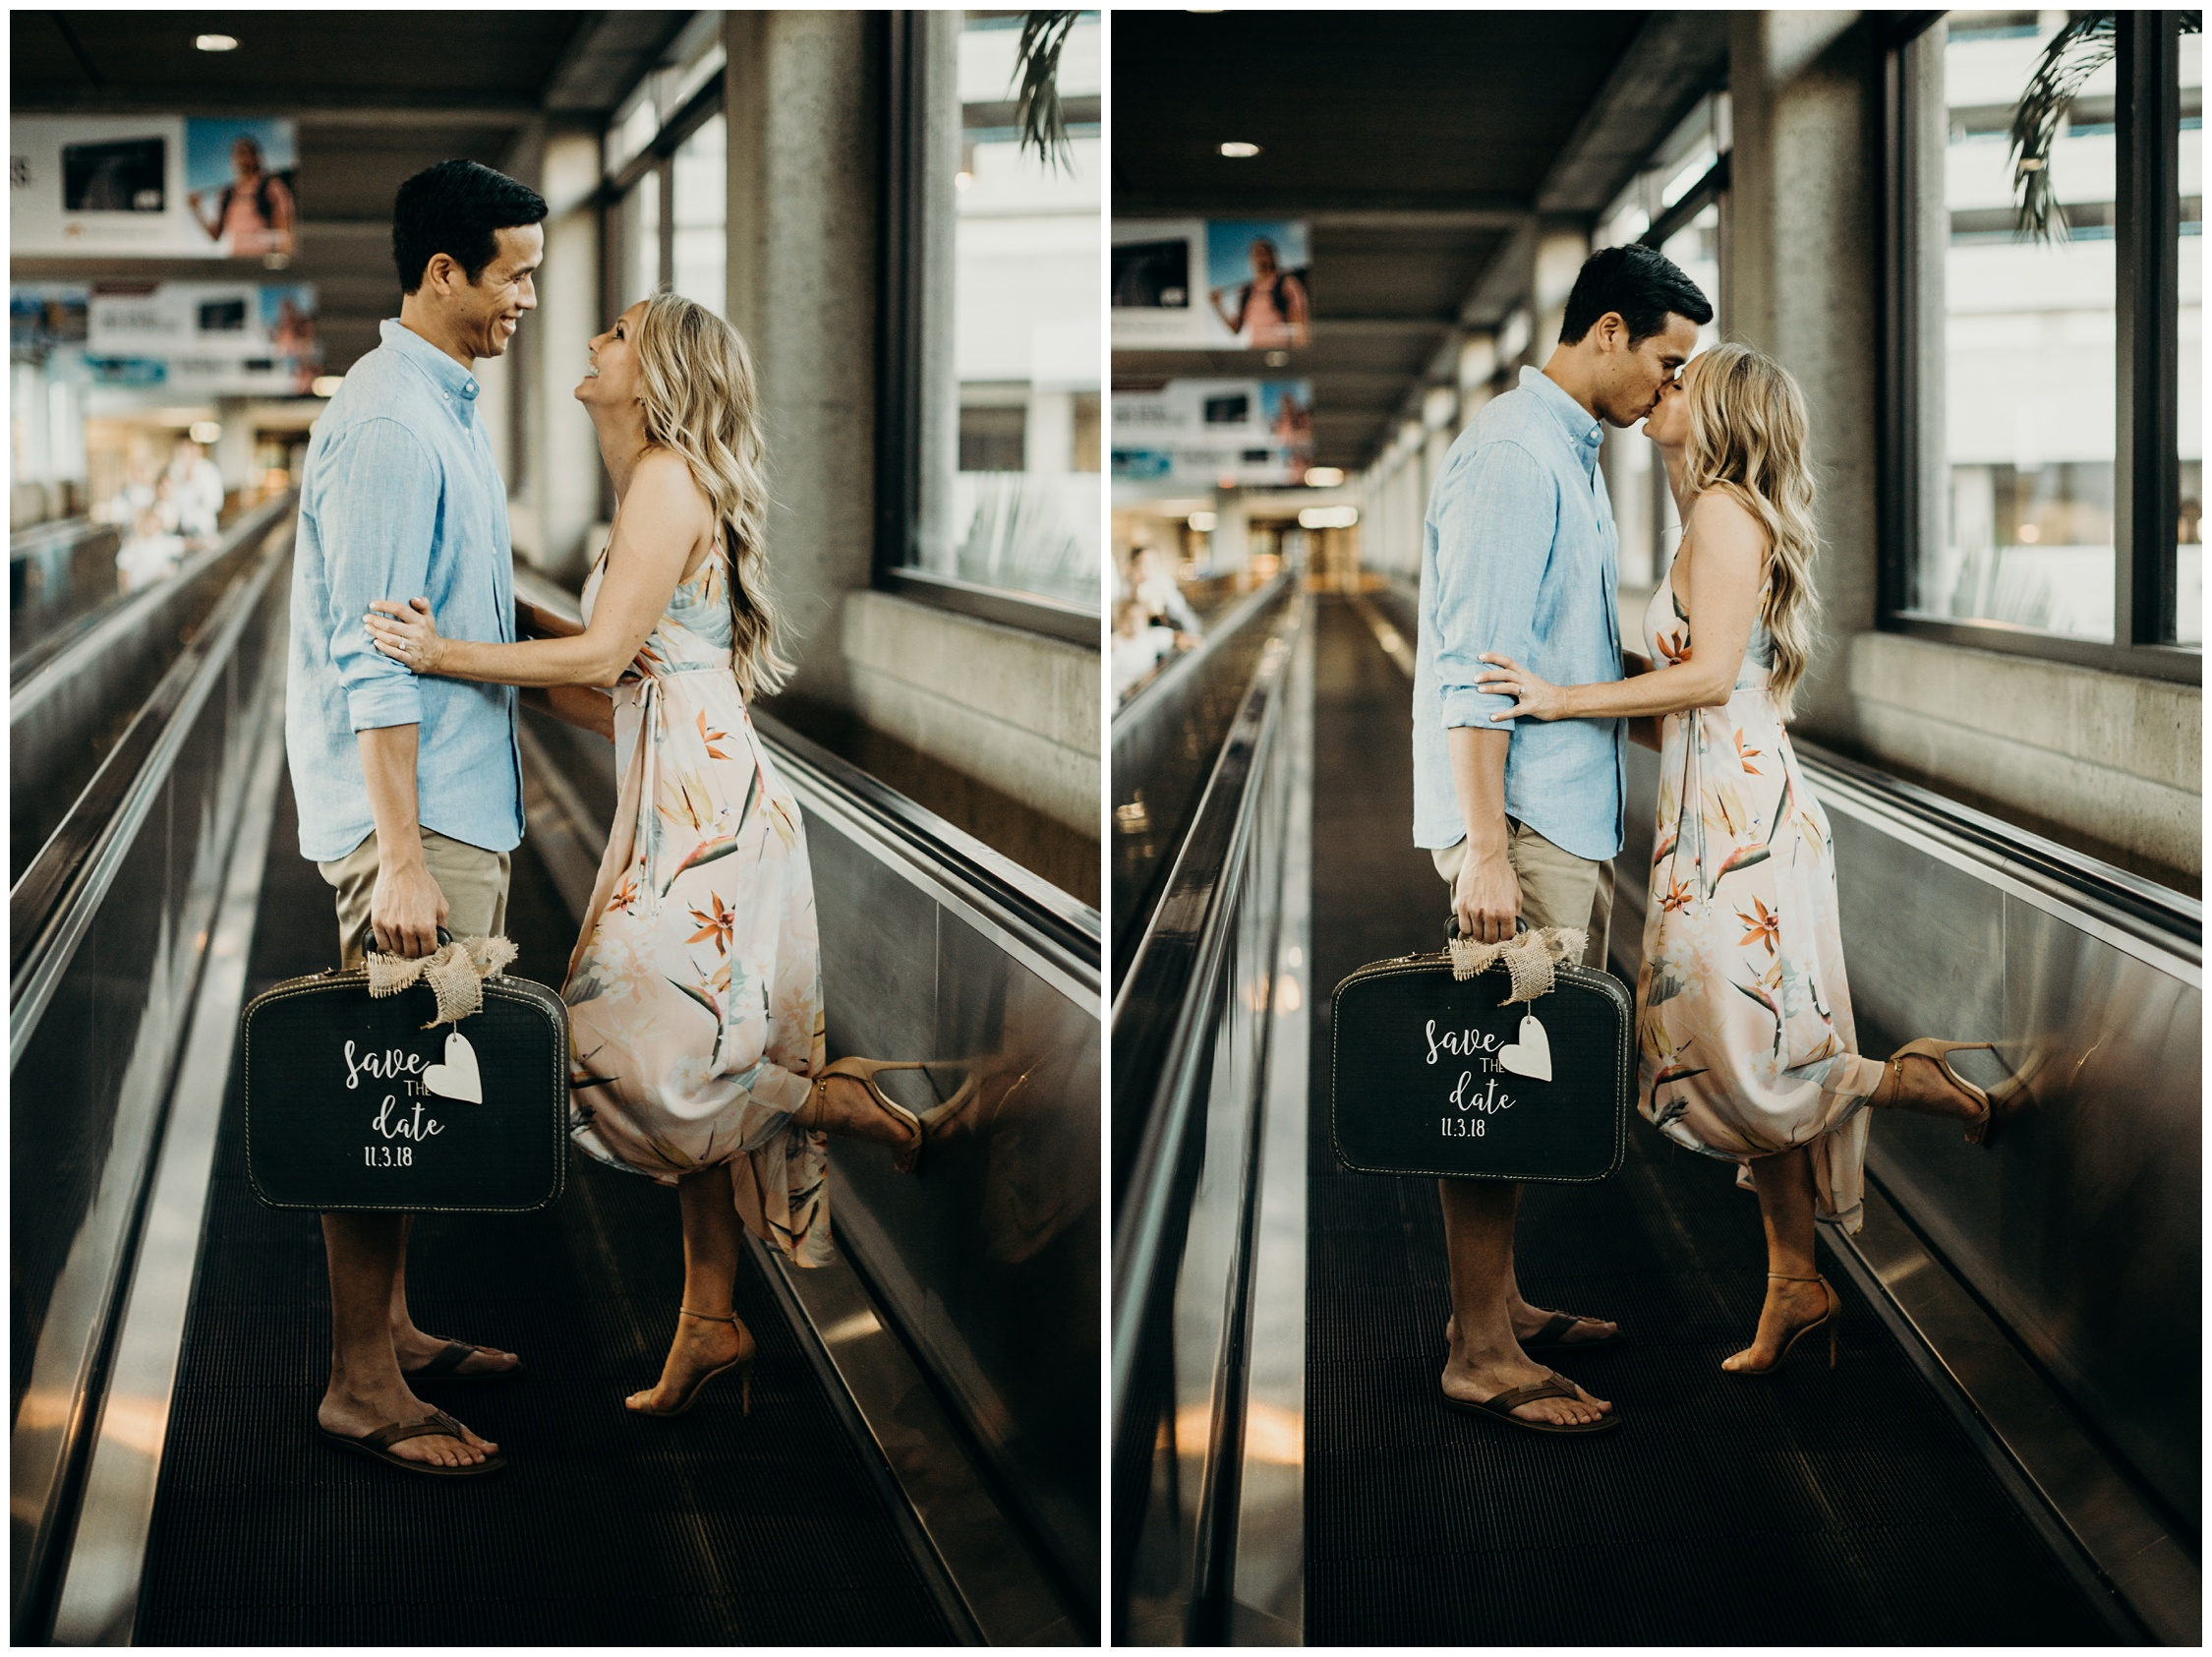 Hawaii-Engagement-Photographer-Keani-Bakula-Honolulu-International-Airport_0027.jpg